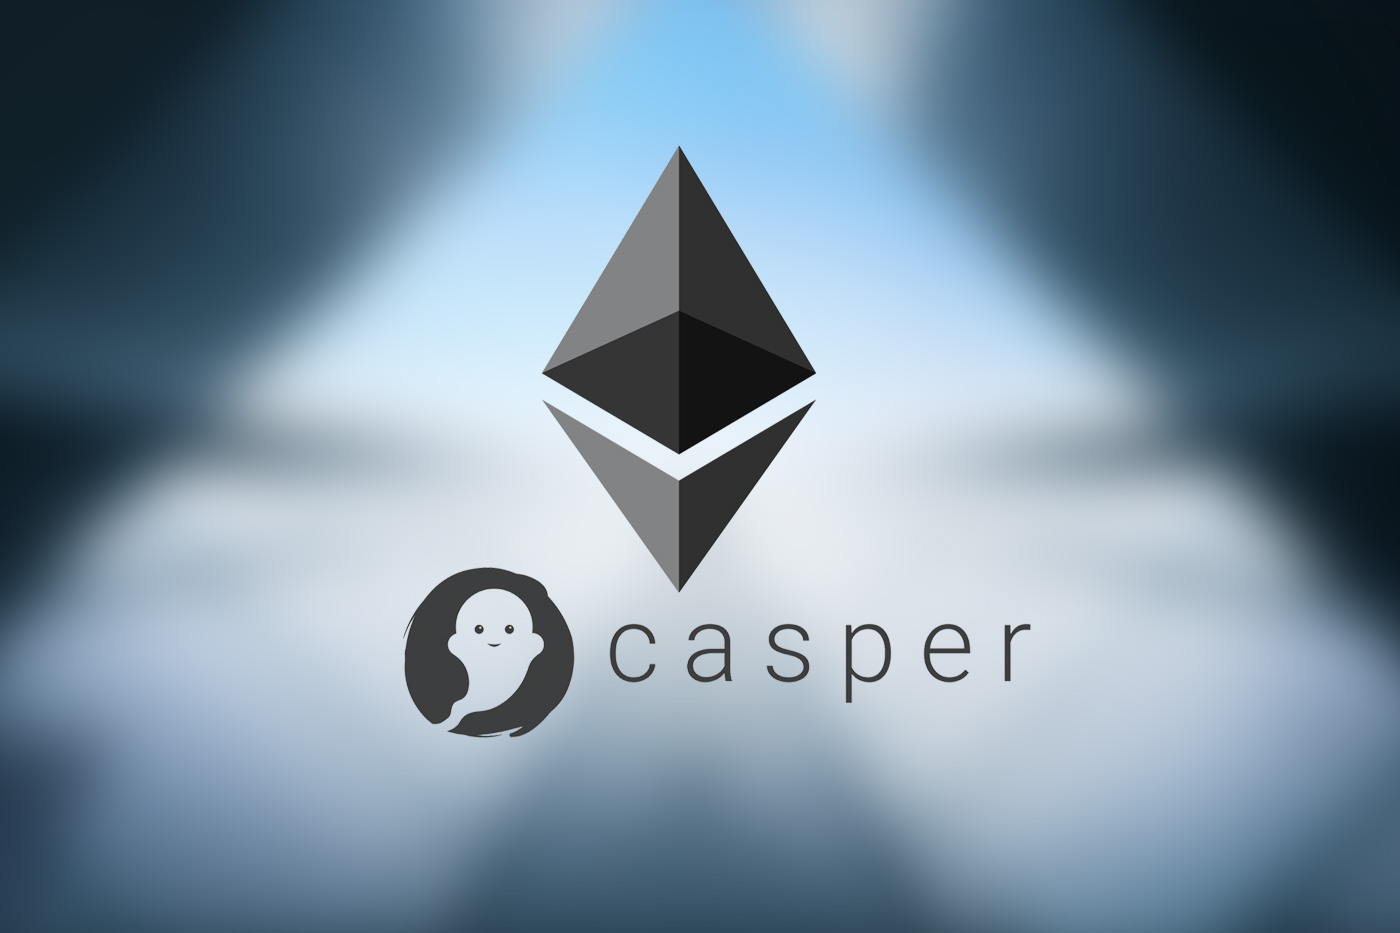 ethereum-actualización-casper-proof of stake-q4-python-sharding